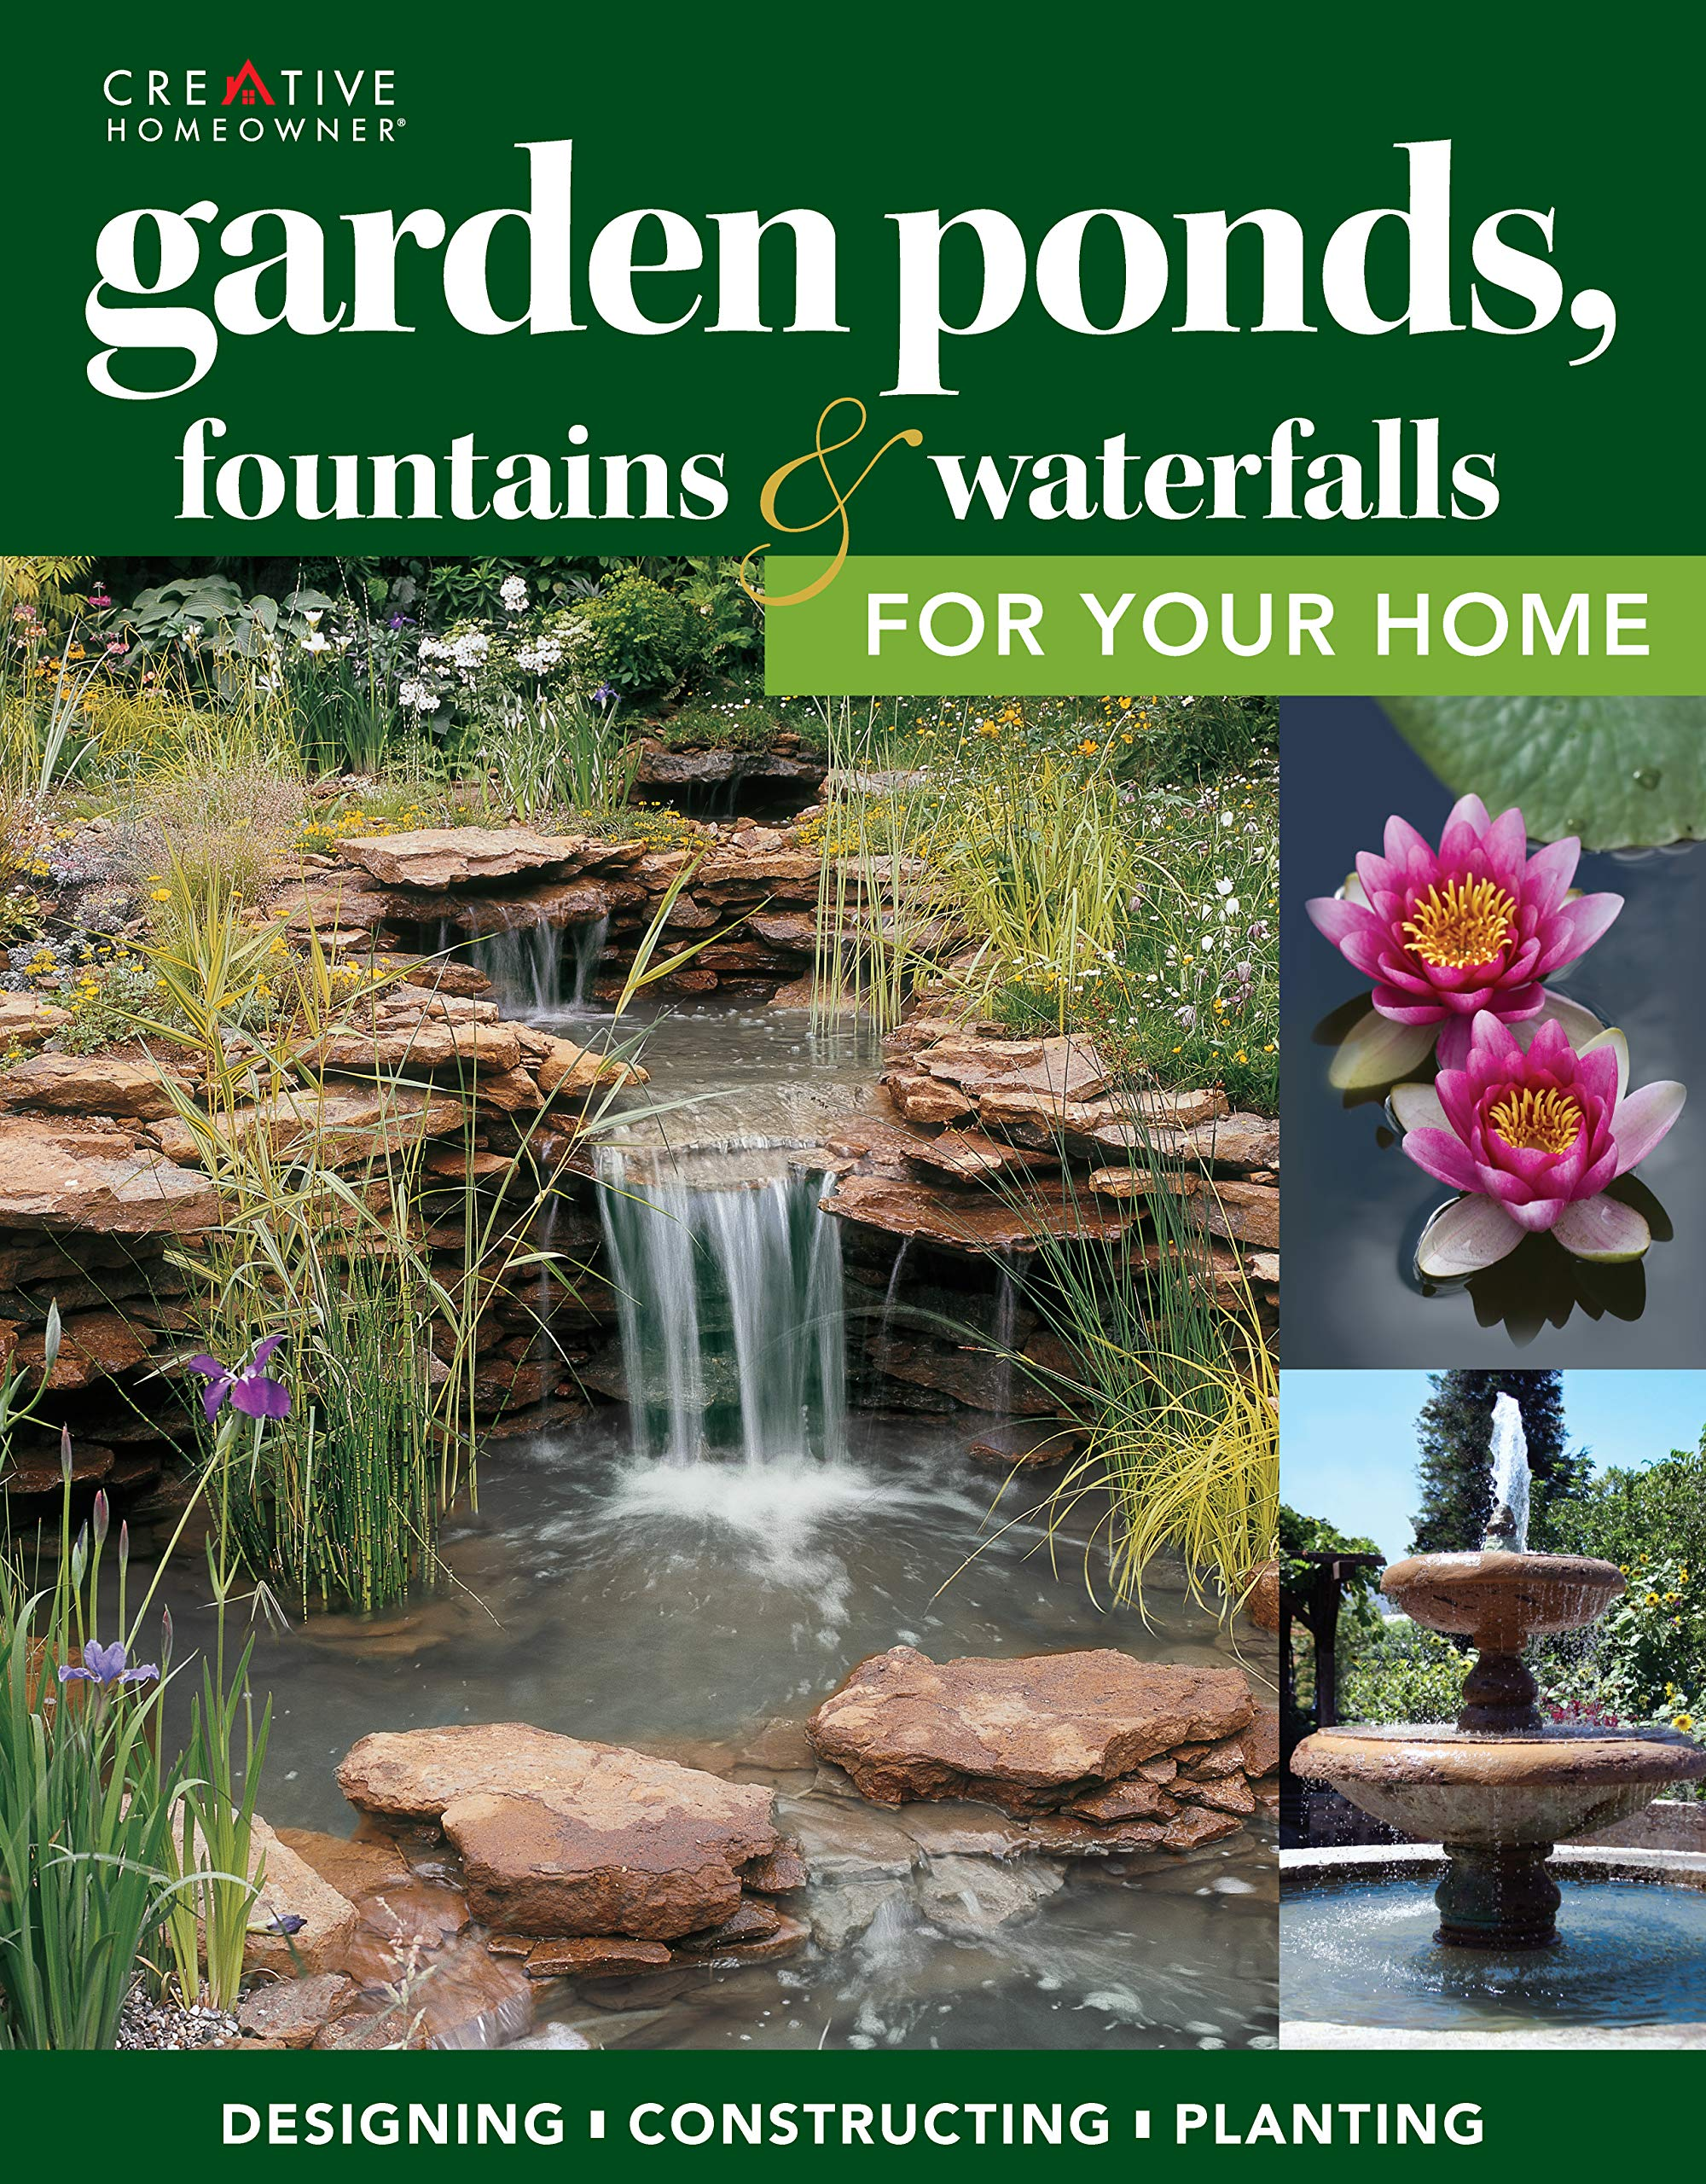 Garden Ponds Fountains Waterfalls For Your Home Designing Constructing Planting Creative Homeowner Step By Step Sequences Over 400 Photos To Landscape Your Garden With Water Plants Fish Editors Of Creative Homeowner